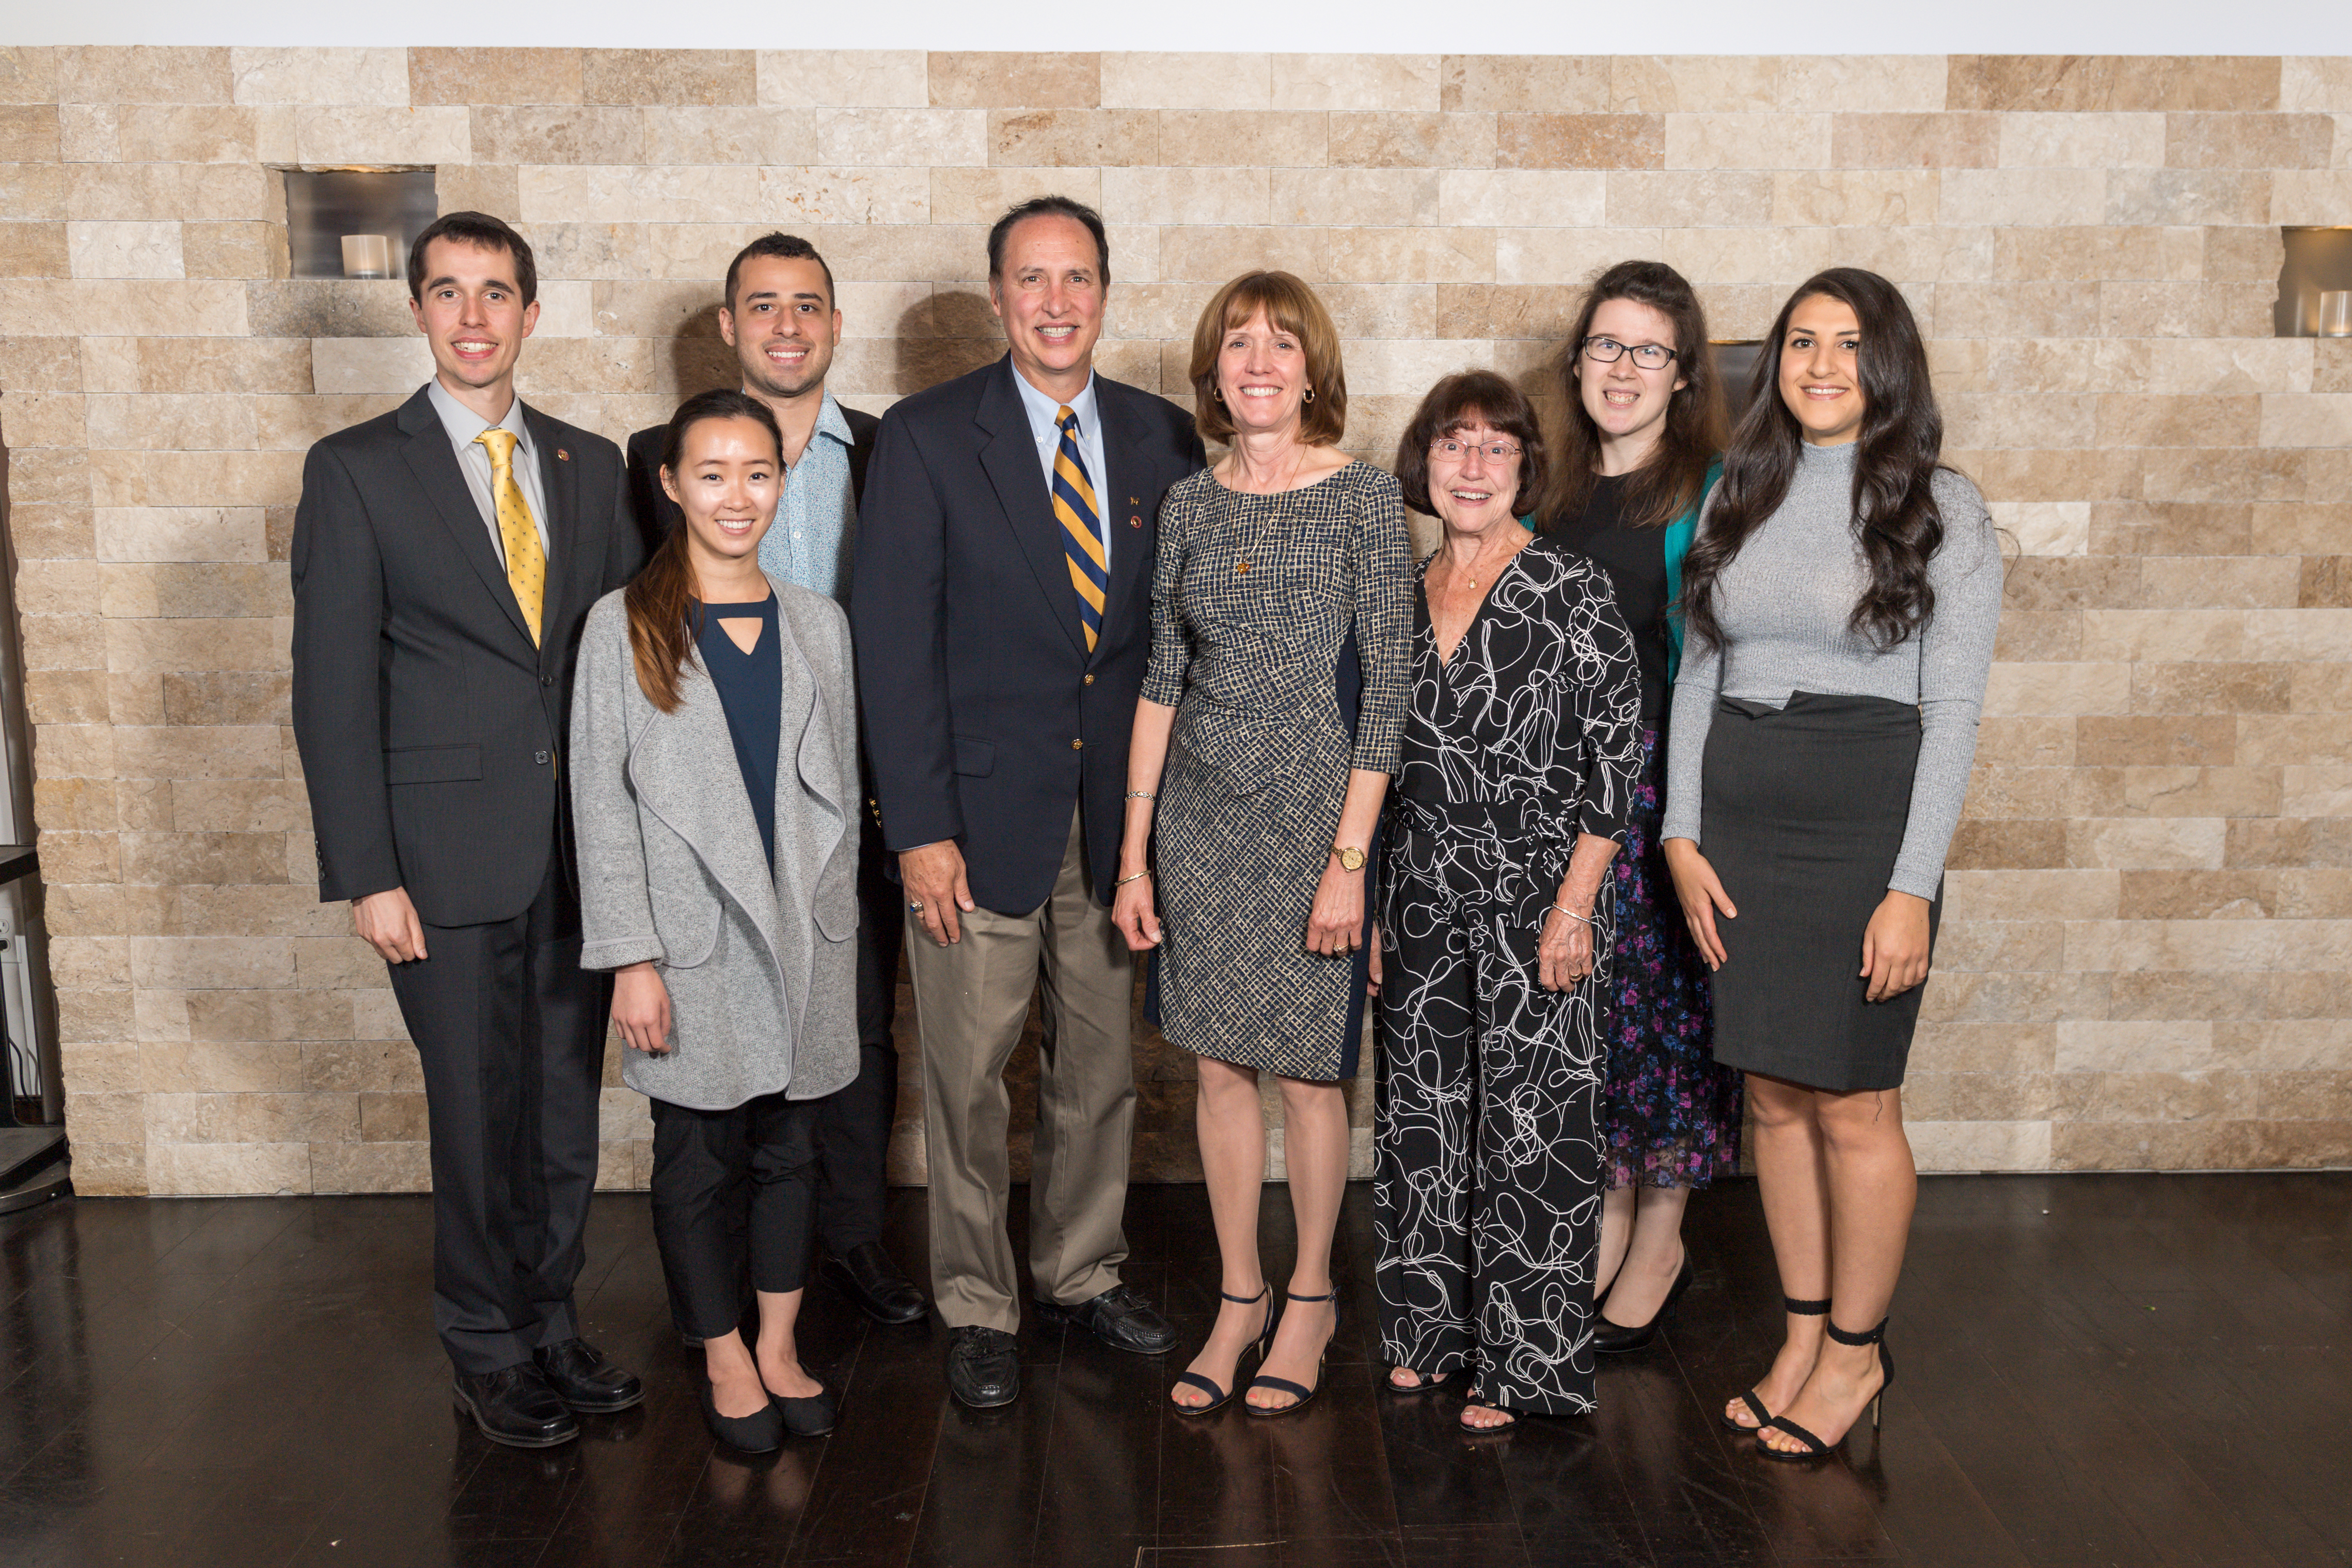 Students and donors meet at the annual Prescott Celebration